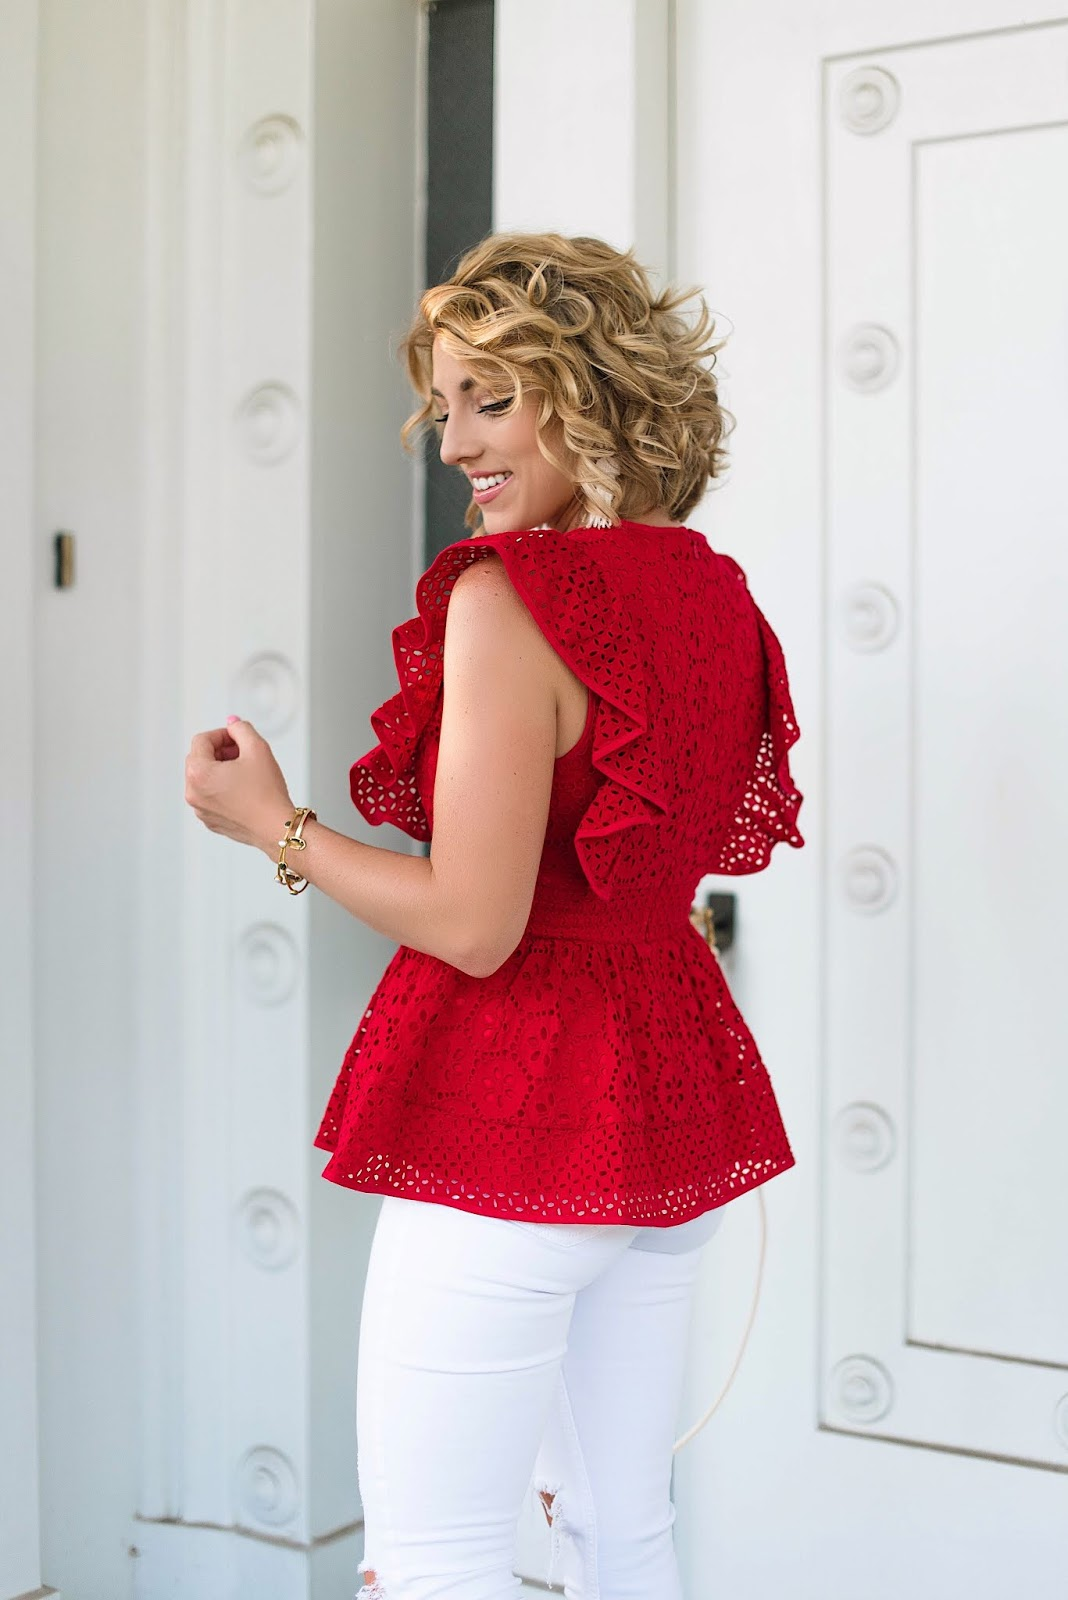 Under $100 Eyelet Peplum Top - Something Delightful Blog